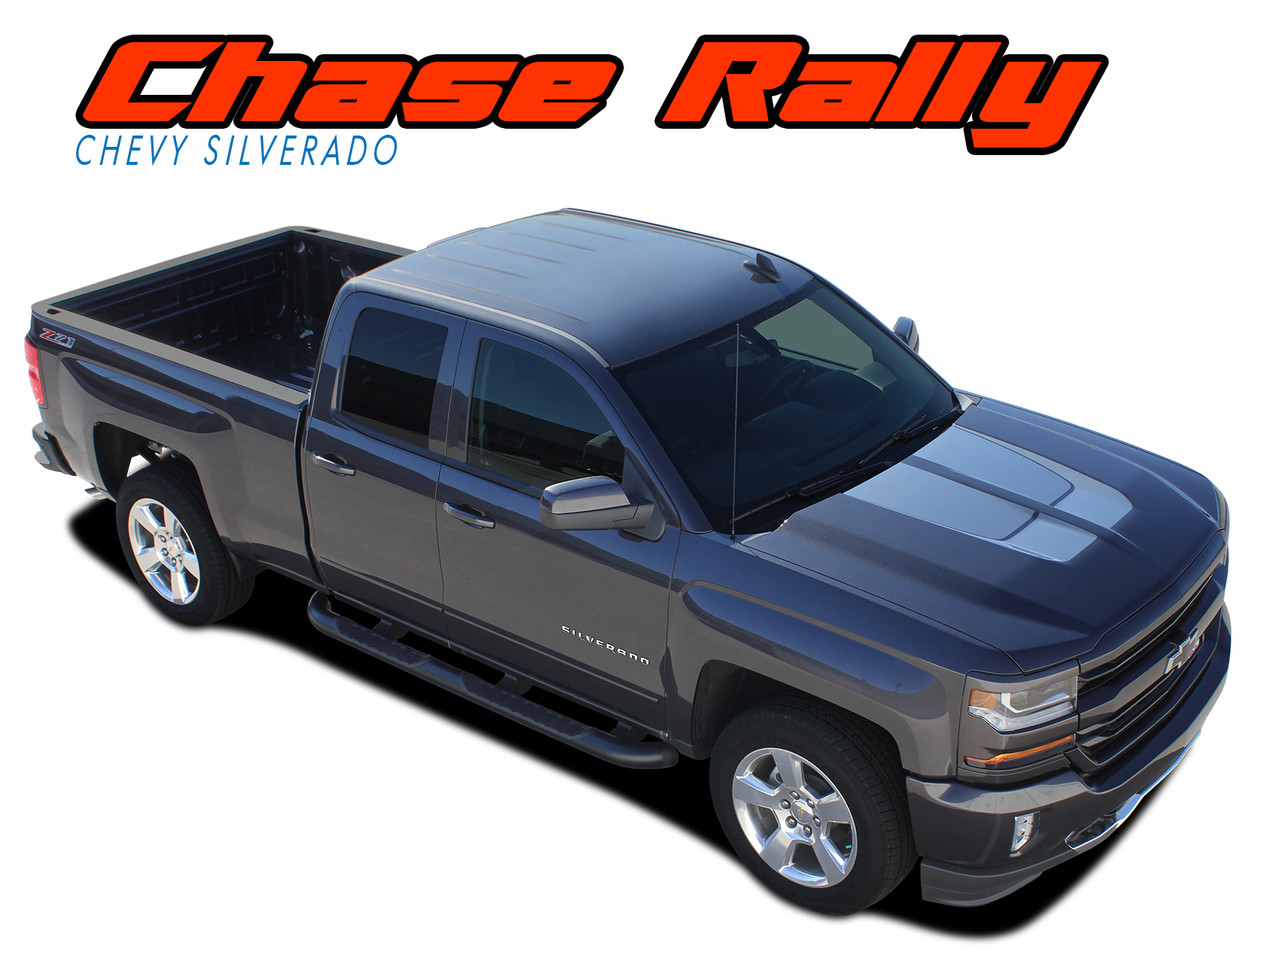 small resolution of chase rally 2016 2017 2018 chevy silverado rally edition style hood tailgate vinyl graphic decal racing stripe kit vgp 3941